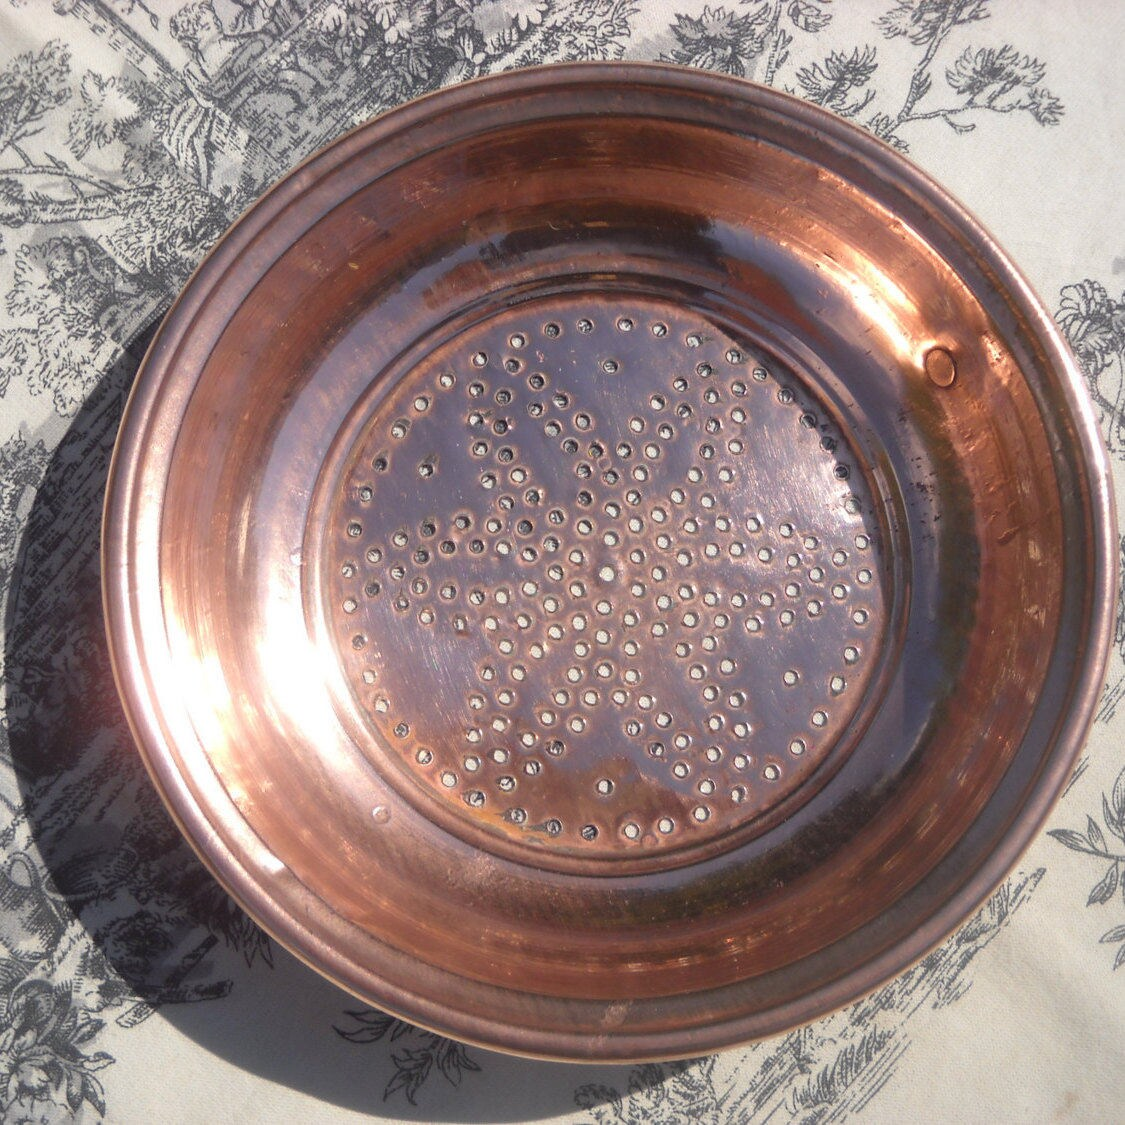 Jam Sieve Copper Vintage French Sieve Copper Pan Jam Fruit Colander Sieve With Cast Iron Ring